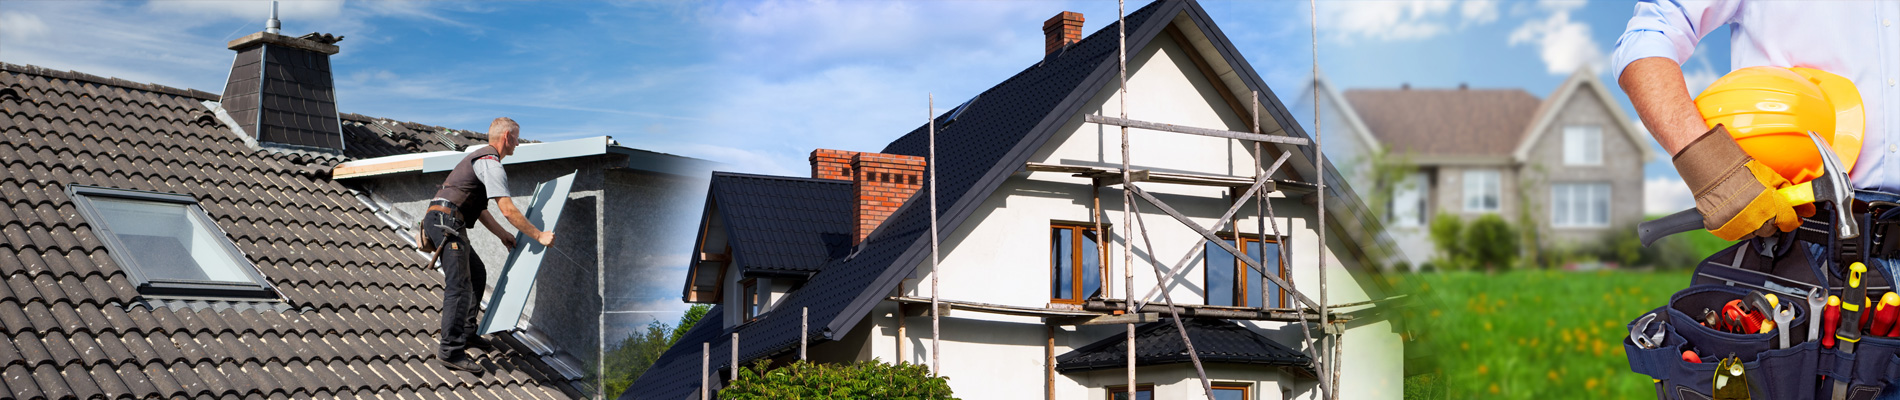 House renovation service in cork local services in ireland for House renovation services